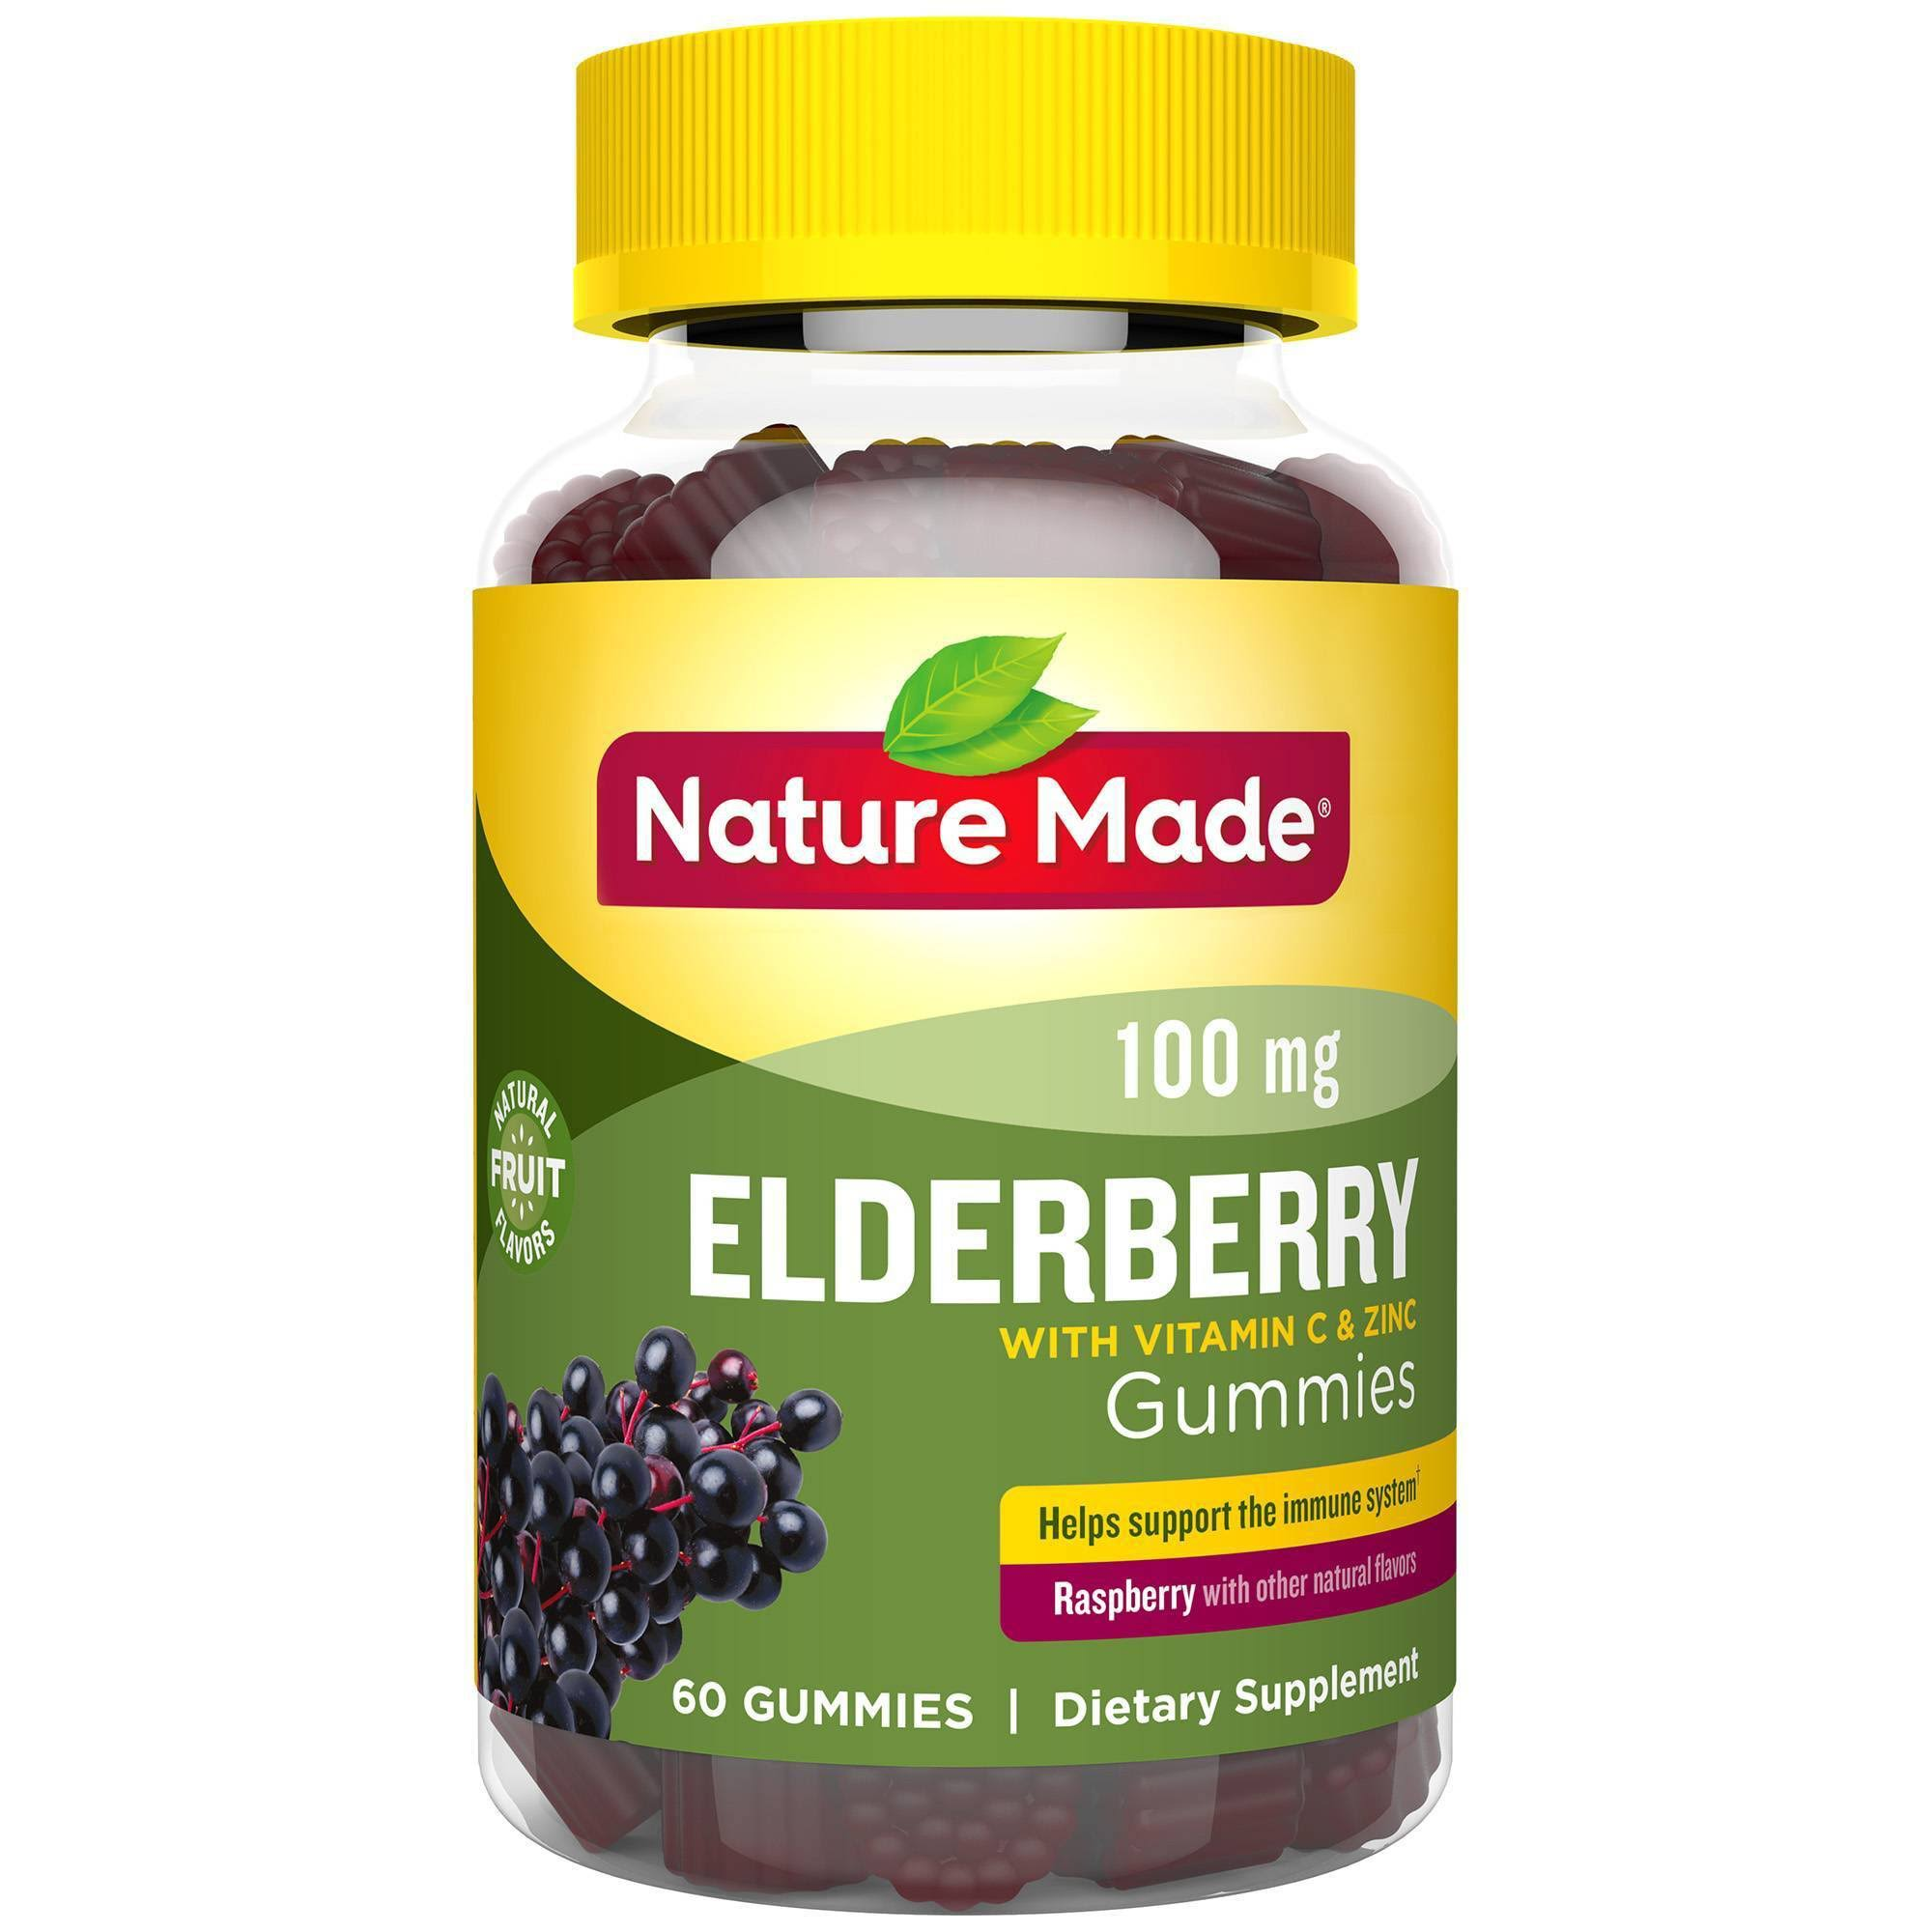 Nature Made Elderberry, 100 mg, Gummies, Raspberry - 60 gummies